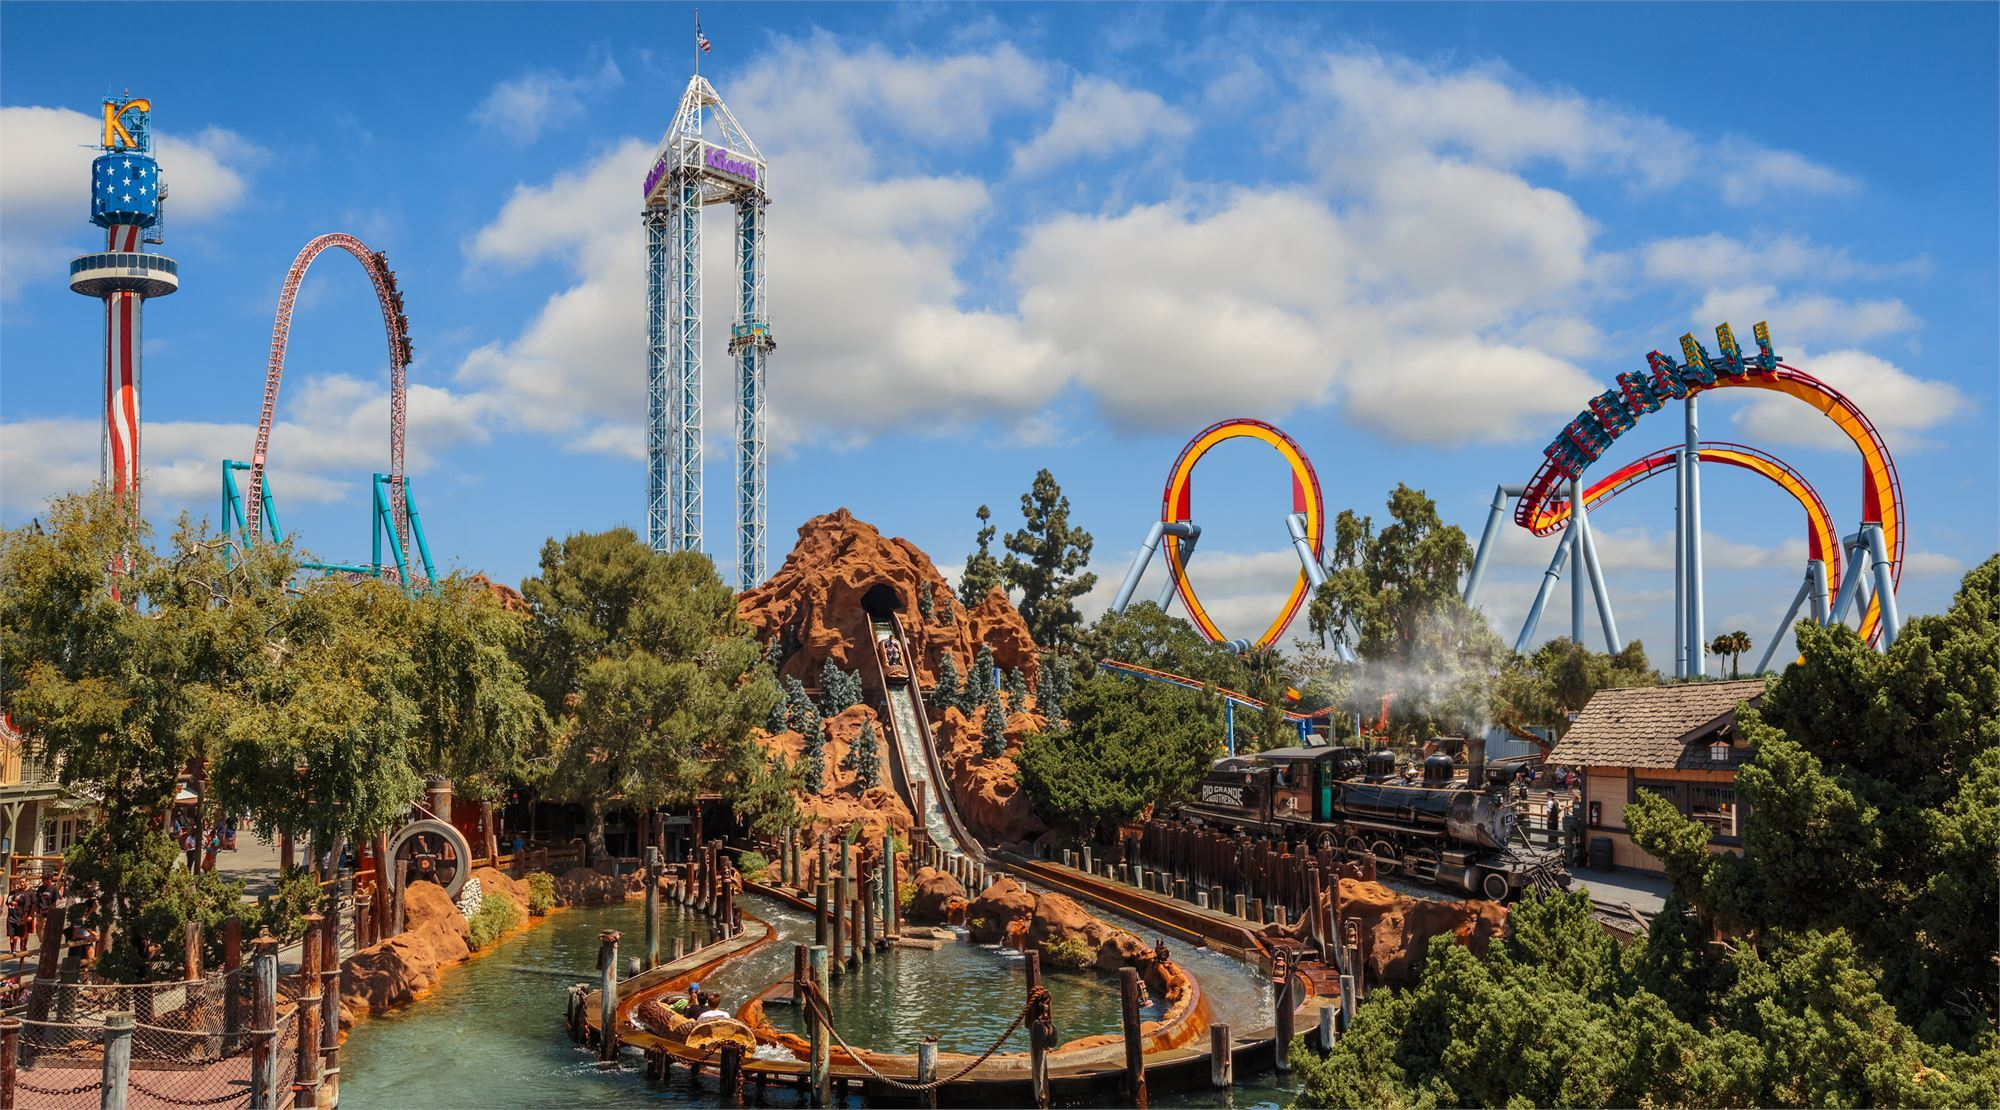 When you're looking for a great day out in California, Knott's Berry Farm is the best solution for the whole family with its dozens of rides, roller coasters, and attractions.